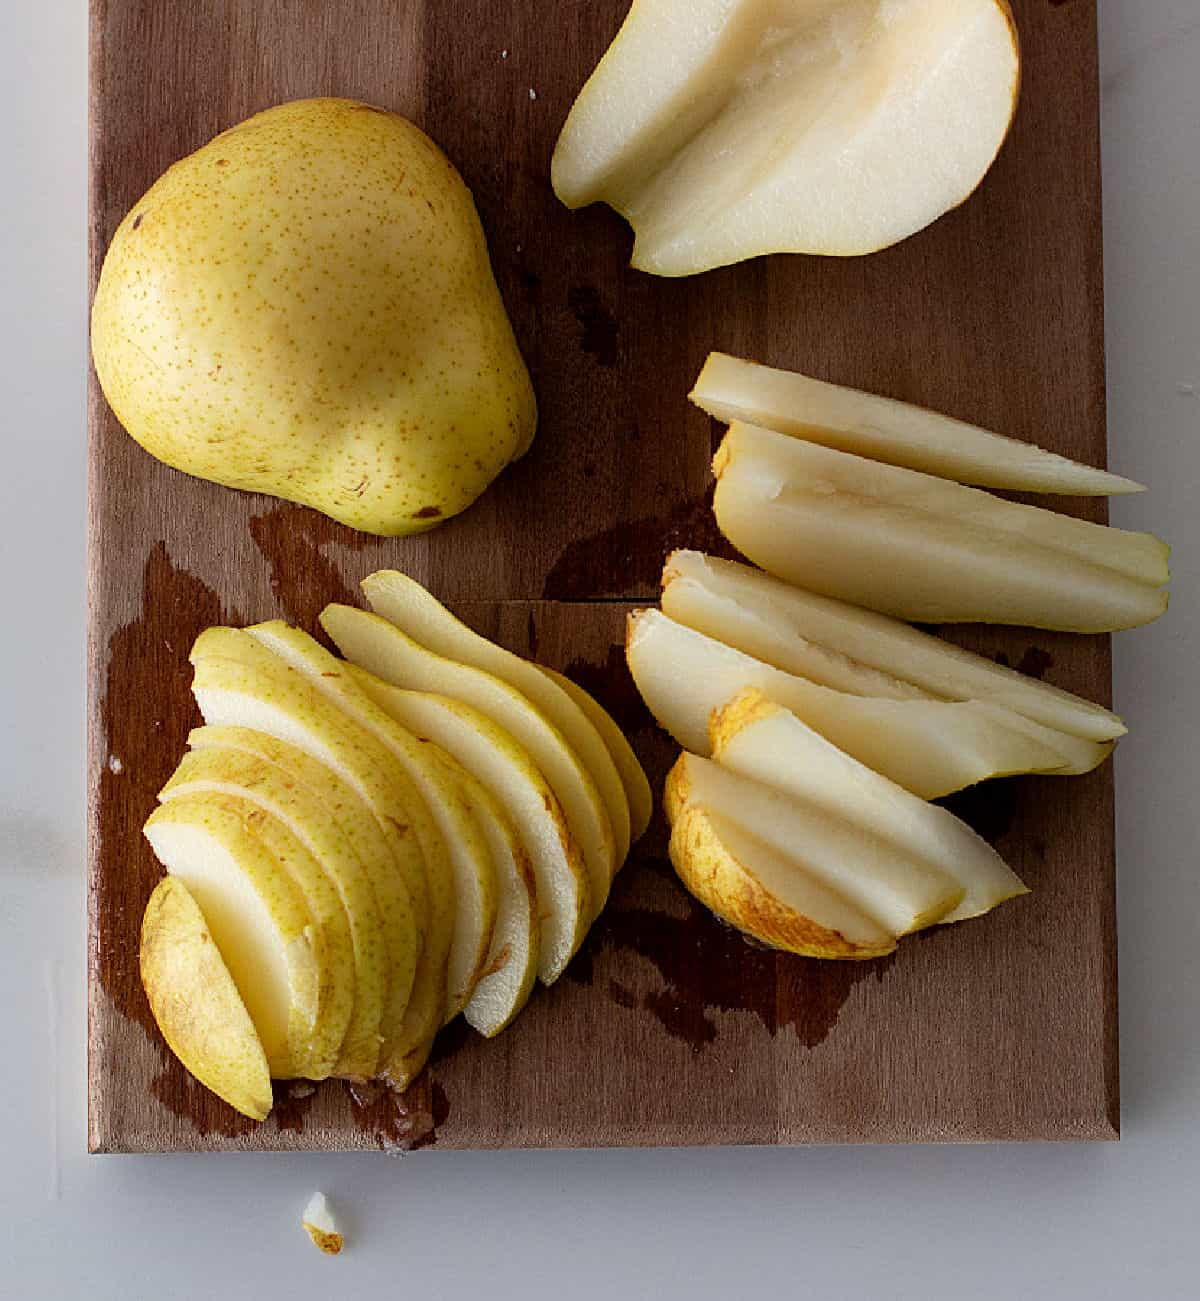 Fresh pear slices and halves on a wooden board